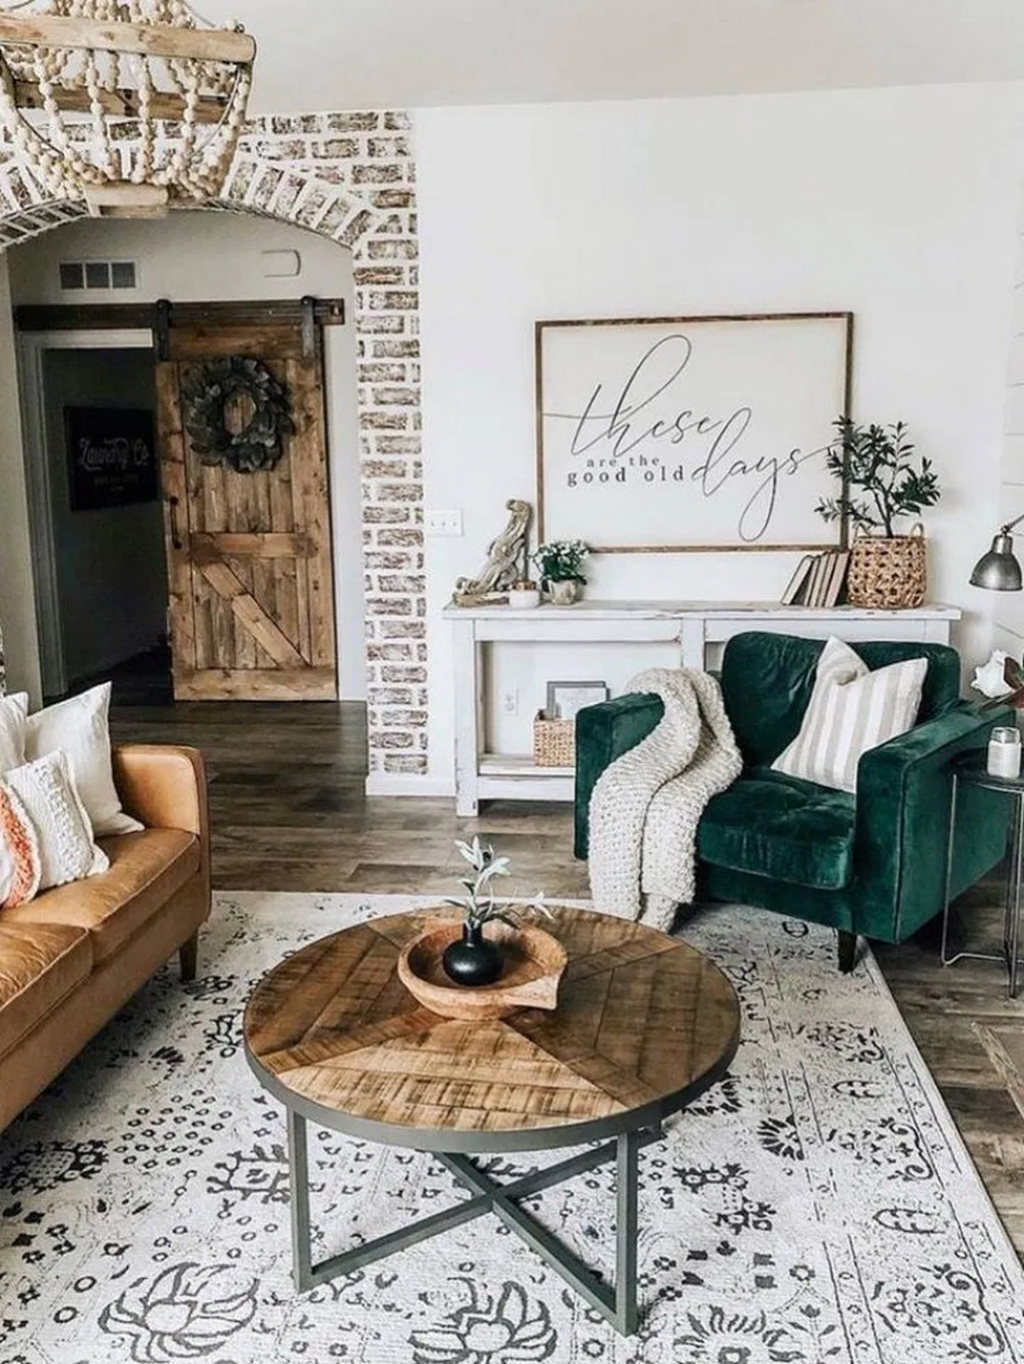 34 The Best Rustic Bohemian Living Room Decor Ideas Homyhomee In 2020 Comfy Living Room Farm House Living Room Room Interior